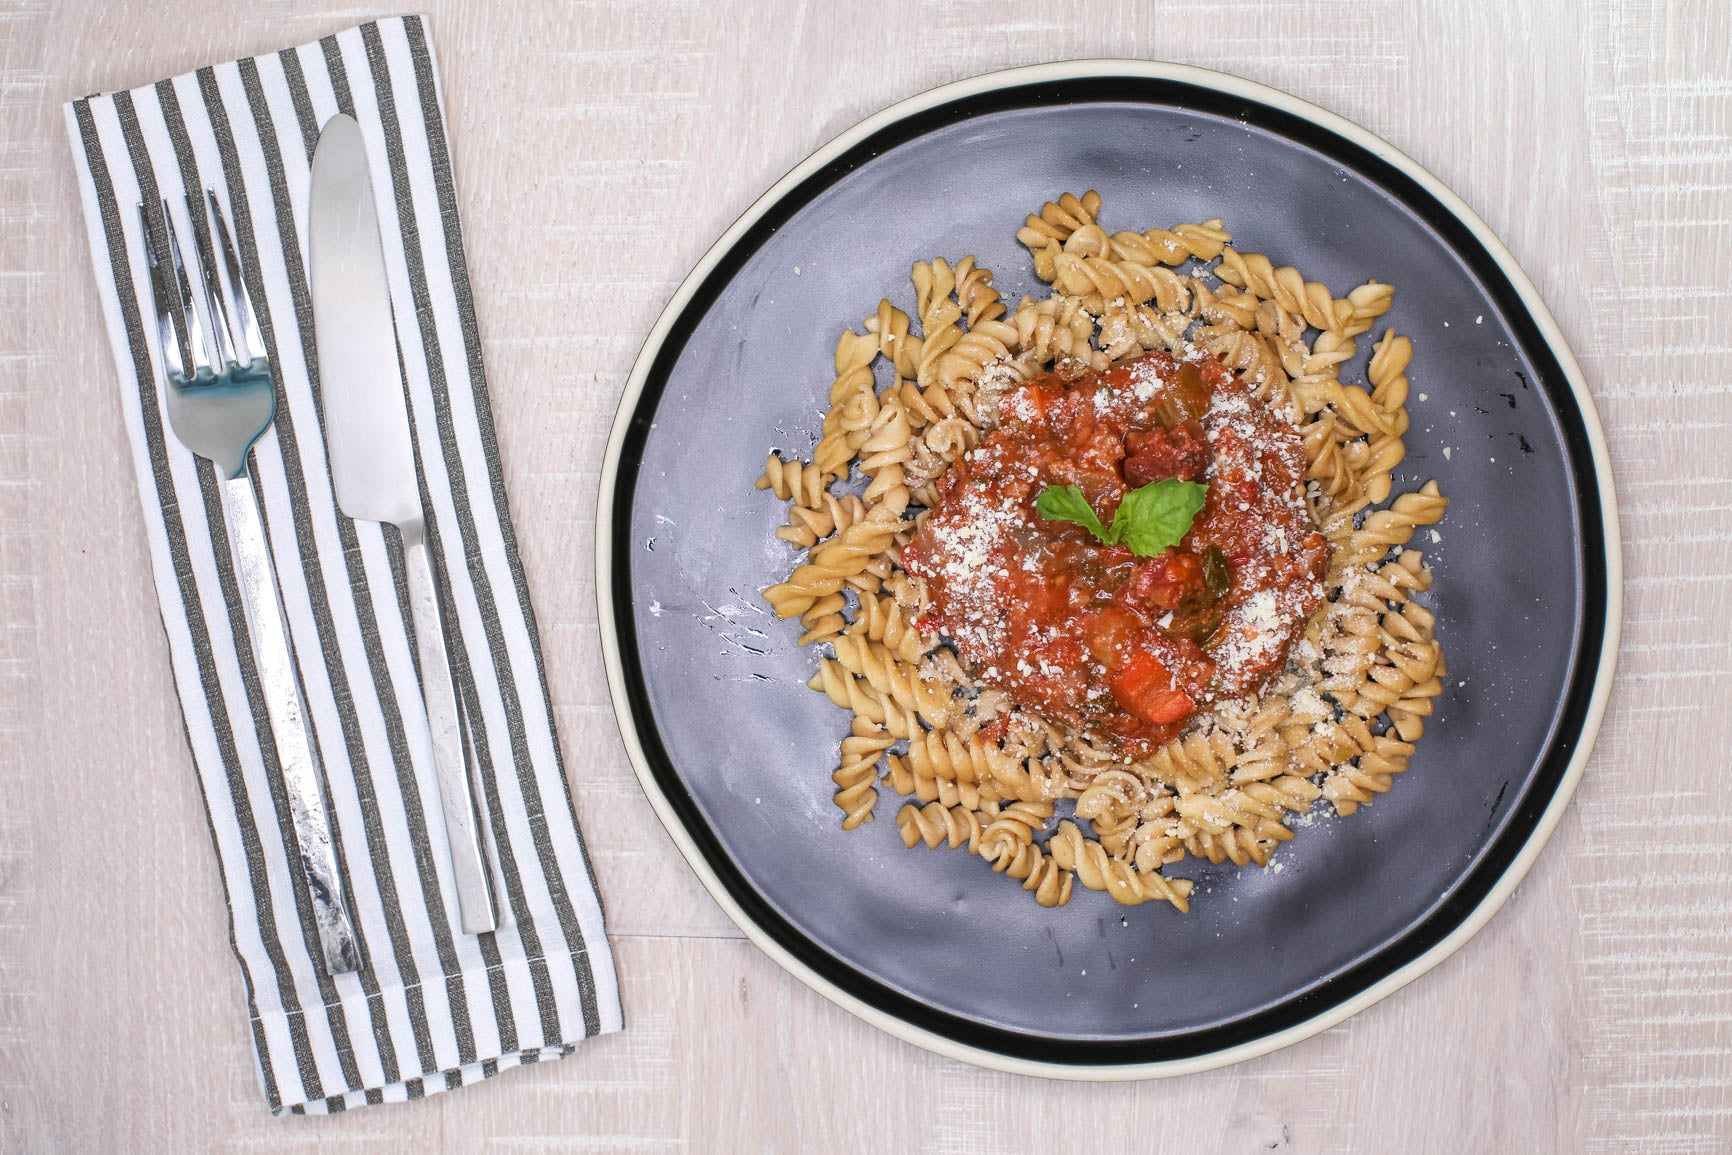 Slow-Cooked Beef Bolognese Sauce over Whole Wheat Pasta